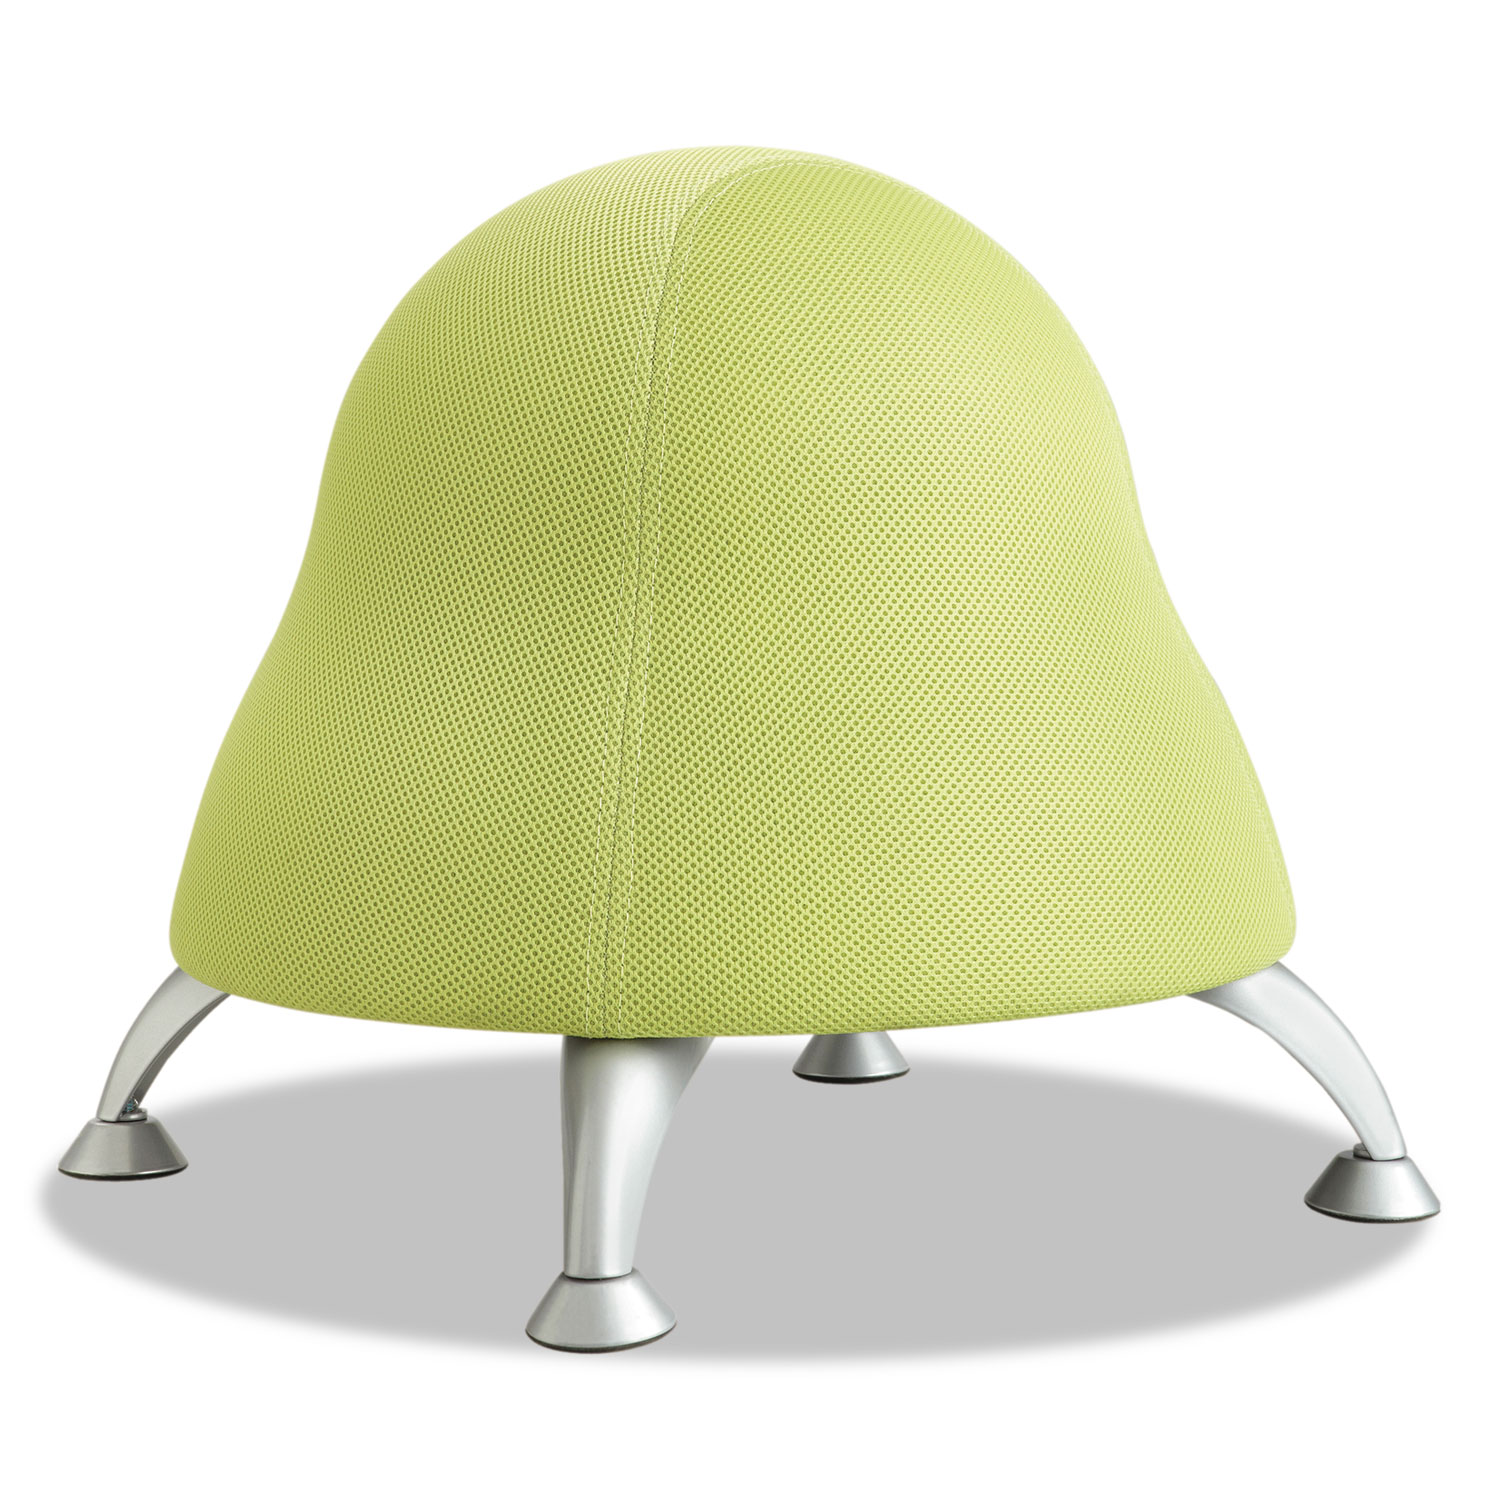 office supplies seating seating specialty seating